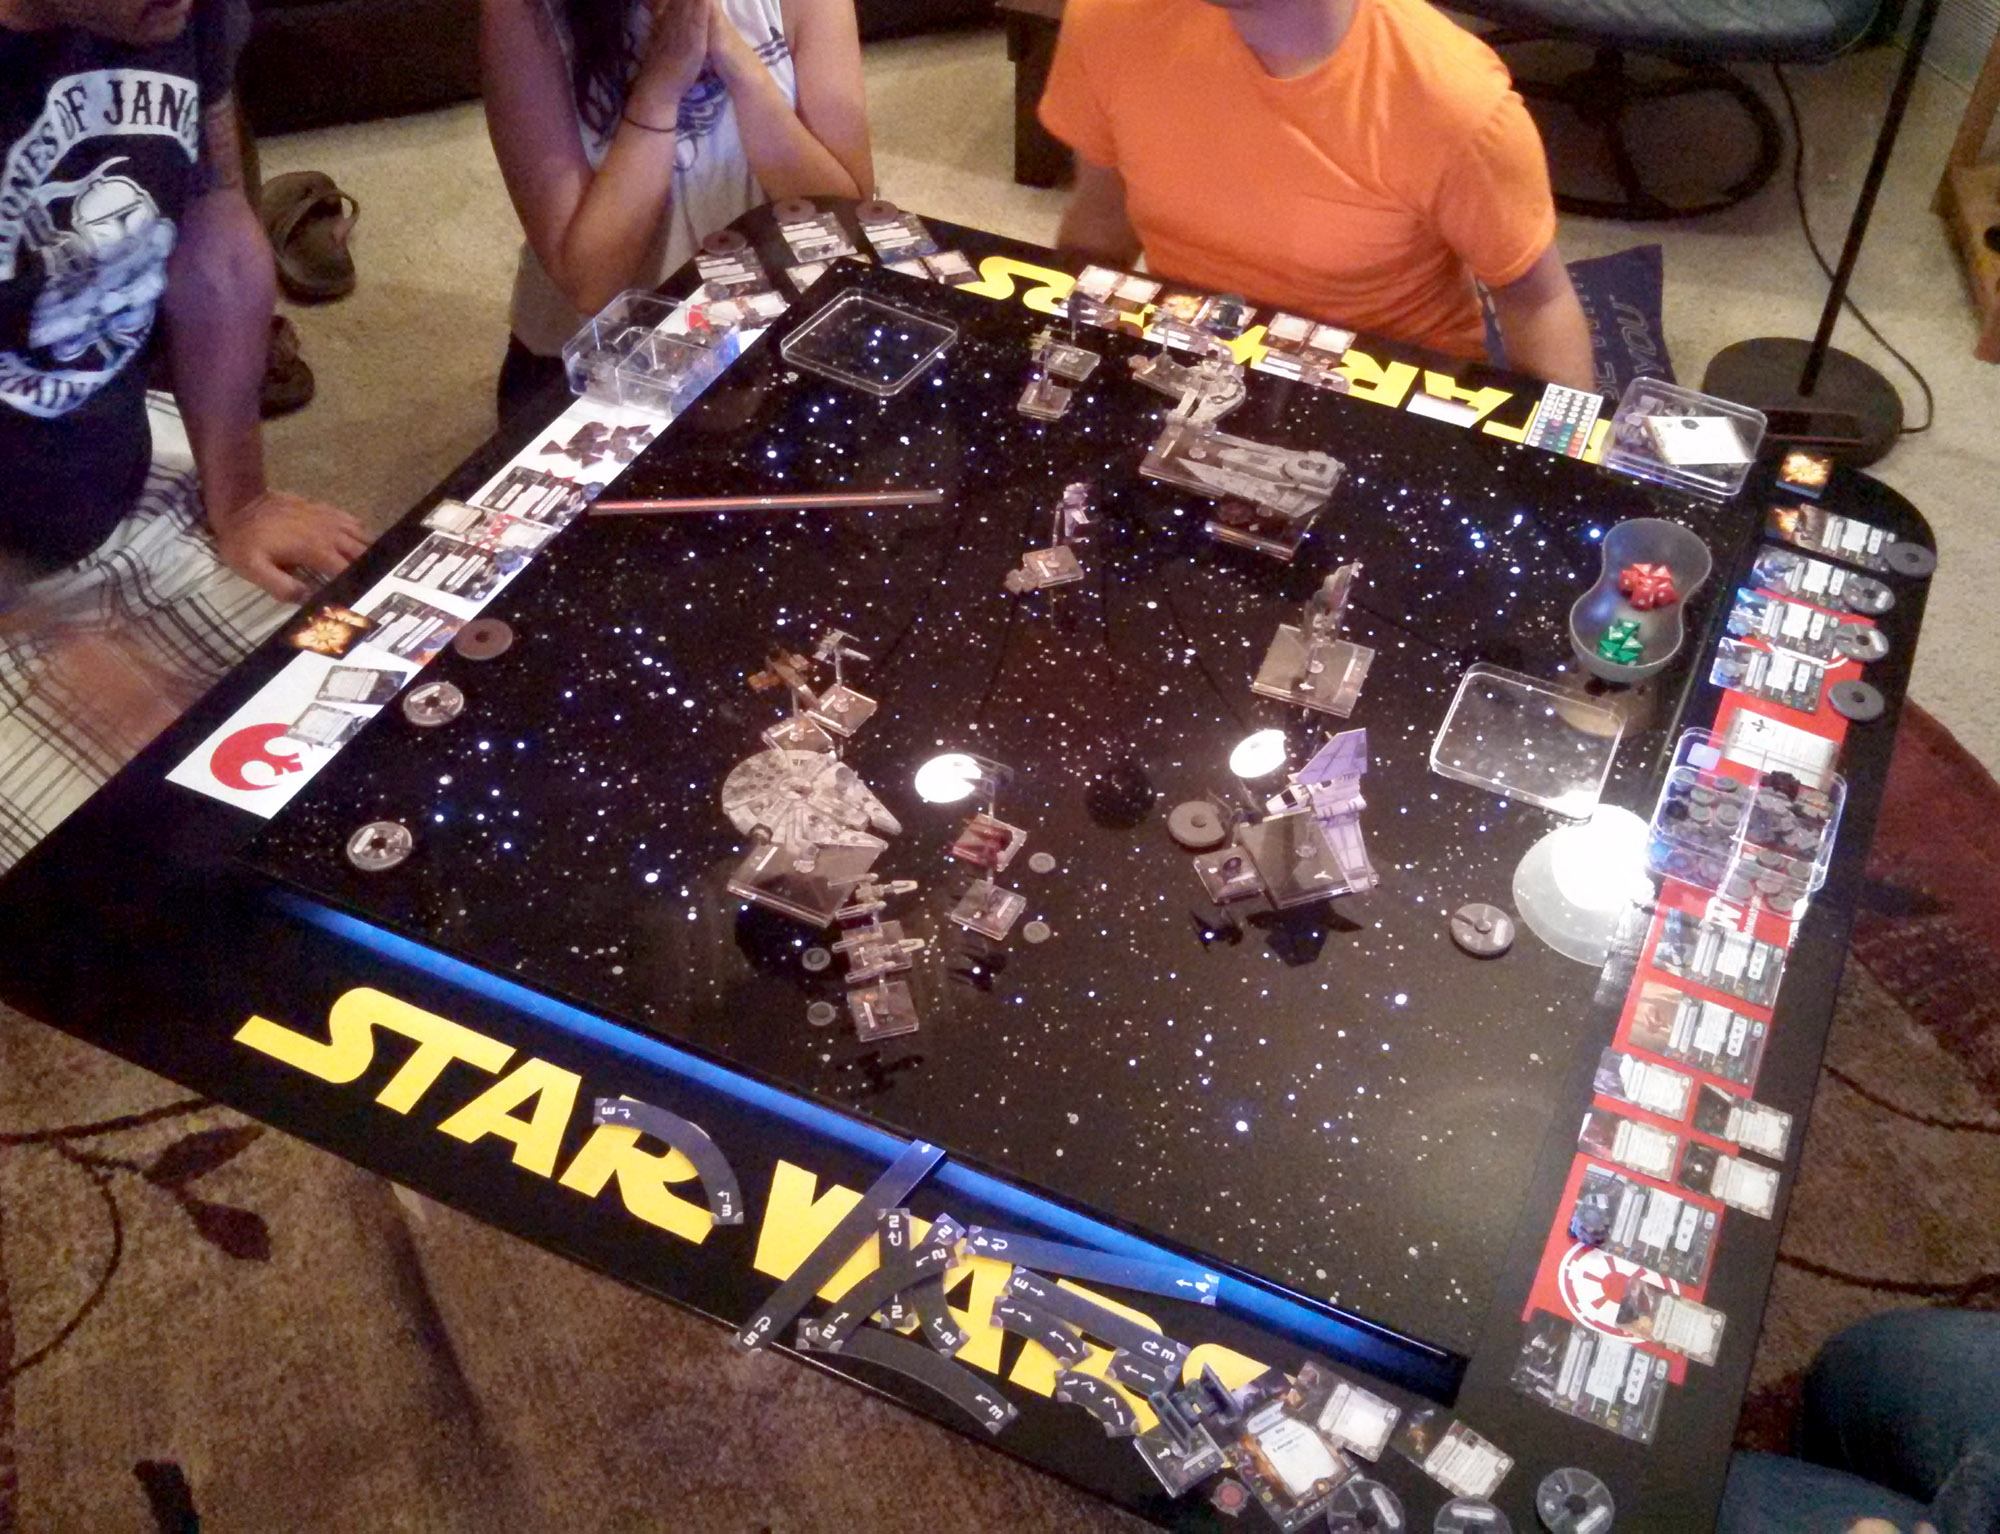 Star Wars: X Wing Fan Creates Custom Tabletop Gaming Table | The Escapist